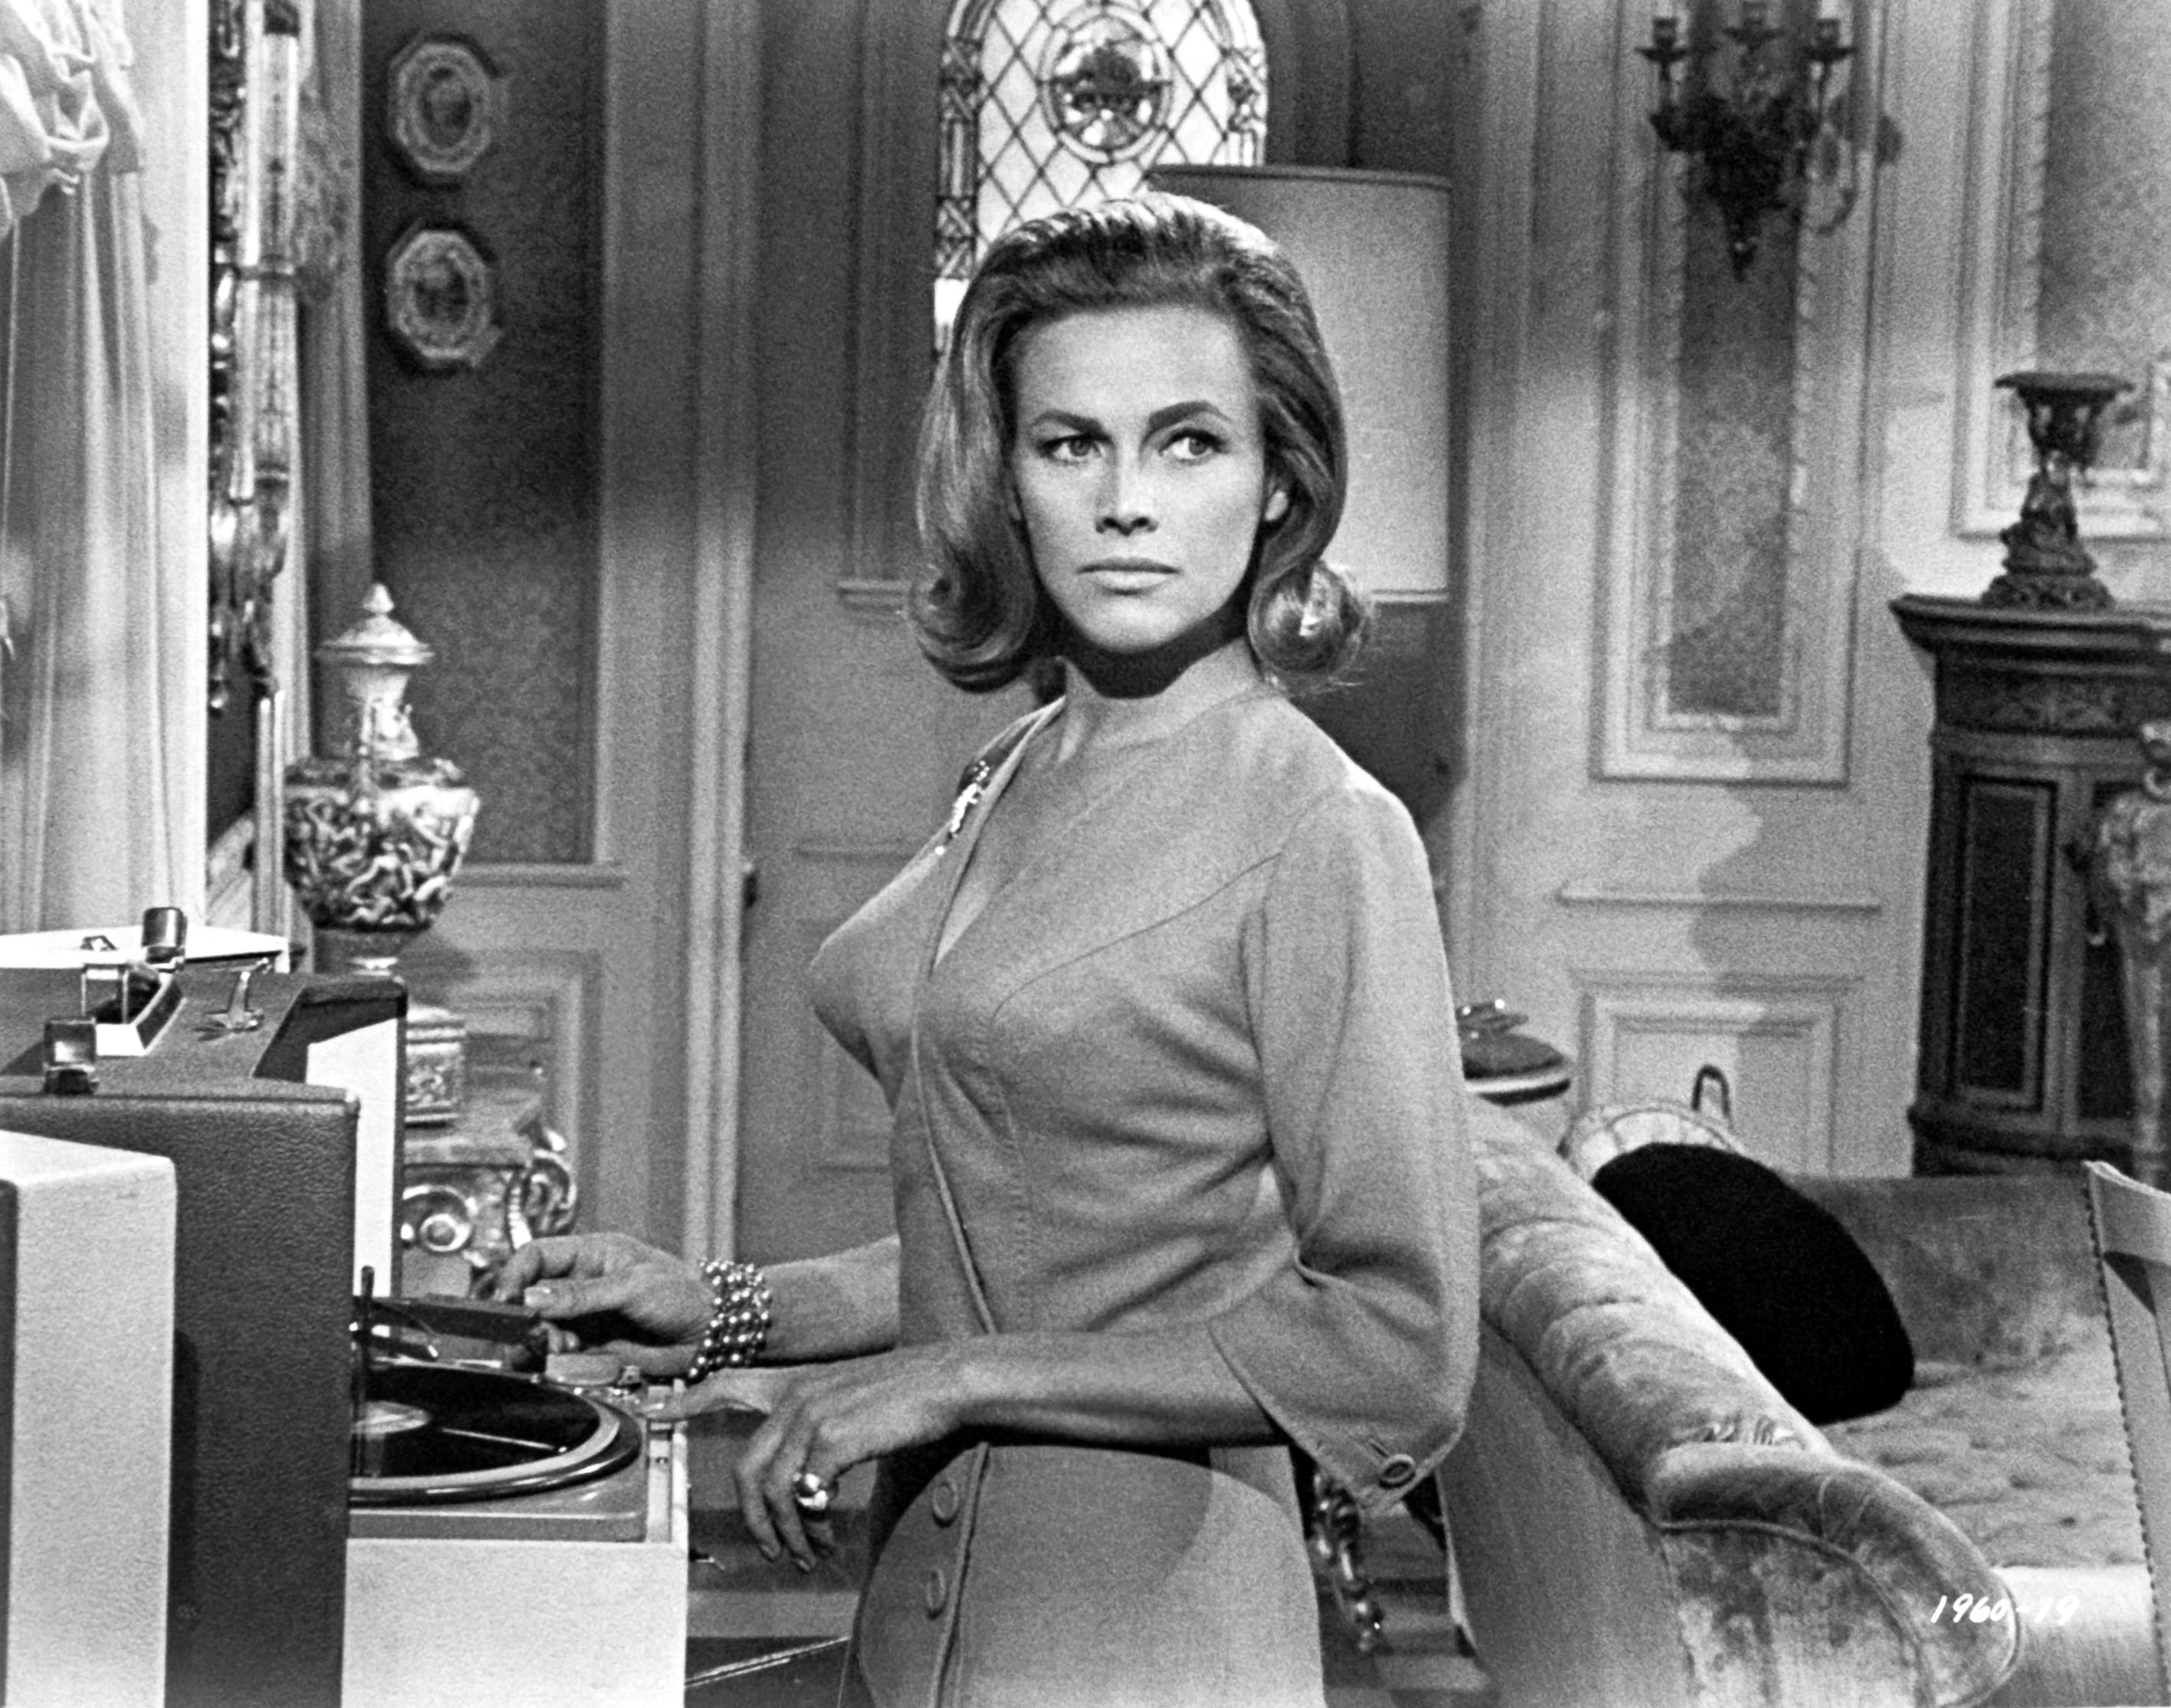 honor blackman measurementshonor blackman bridget jones, honor blackman 2015, honor blackman imdb, honor blackman, honor blackman avengers, honor blackman biography, honor blackman wiki, honor blackman photos, honor blackman columbo, honor blackman wikipedia, honor blackman now, honor blackman measurements, honor blackman sitcom, honor blackman net worth, honor blackman hot, honor blackman images, honor blackman midsomer murders